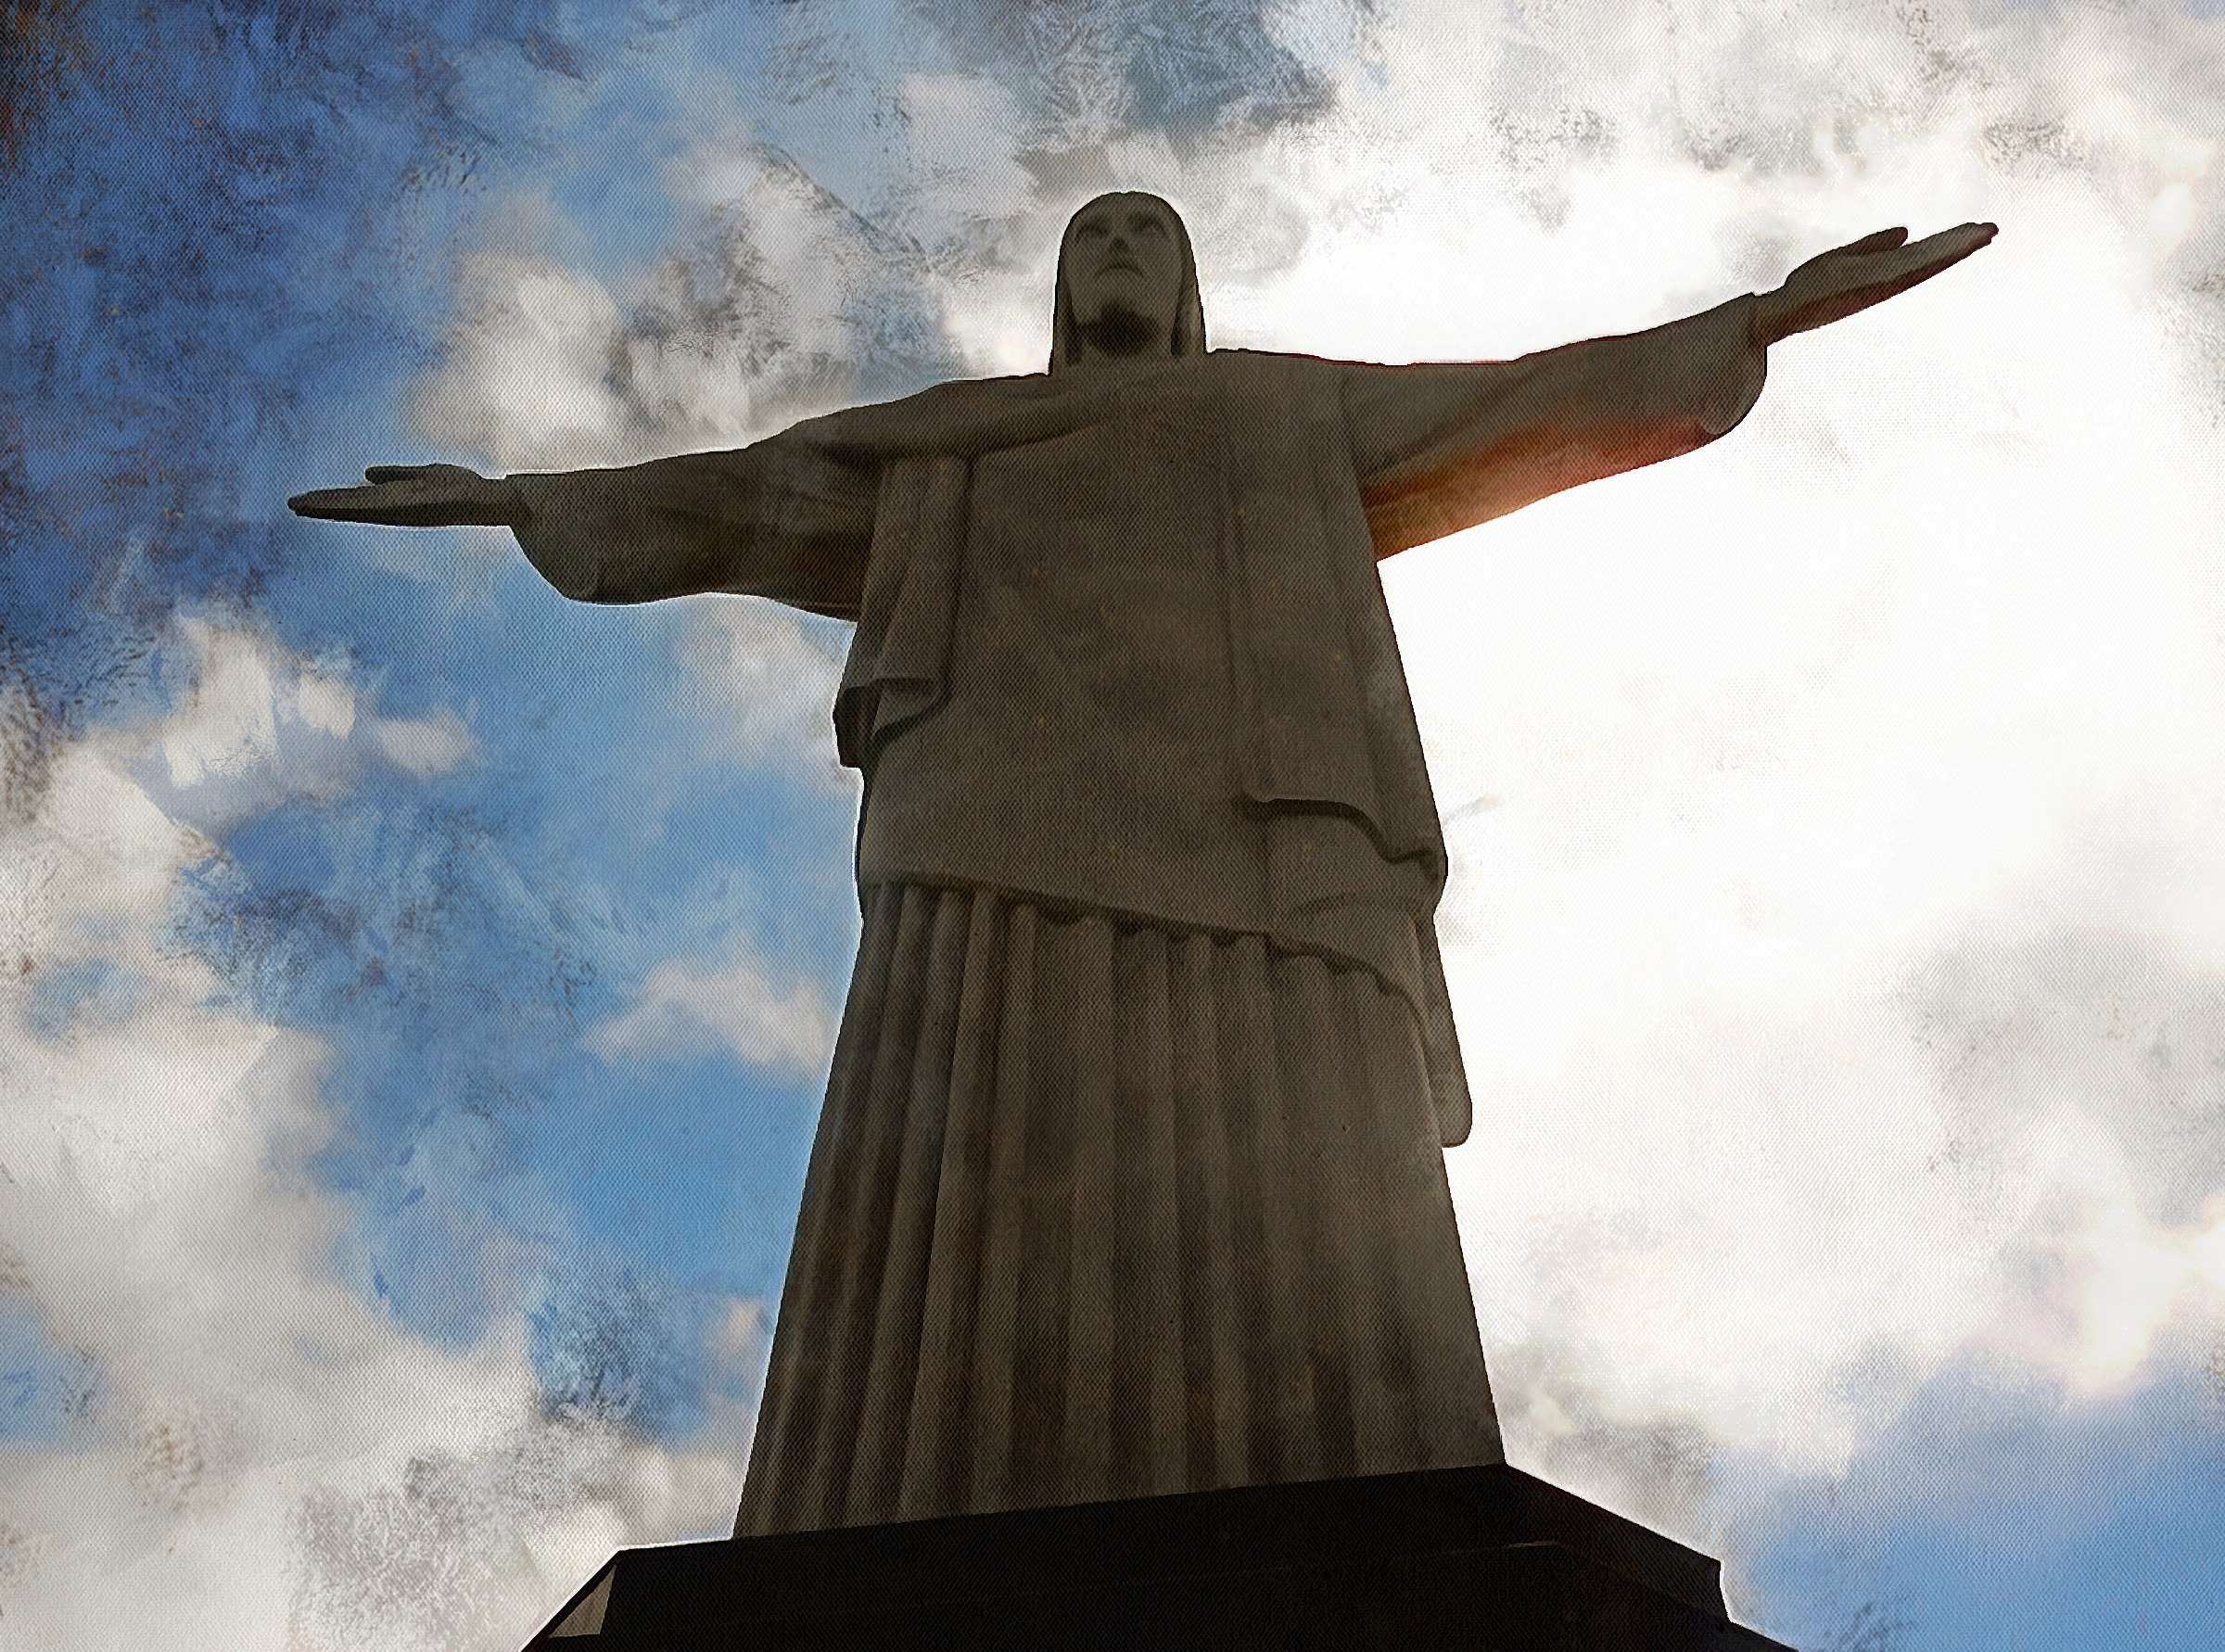 10 Fun Facts about Brazil - Interesting facts about Brazil